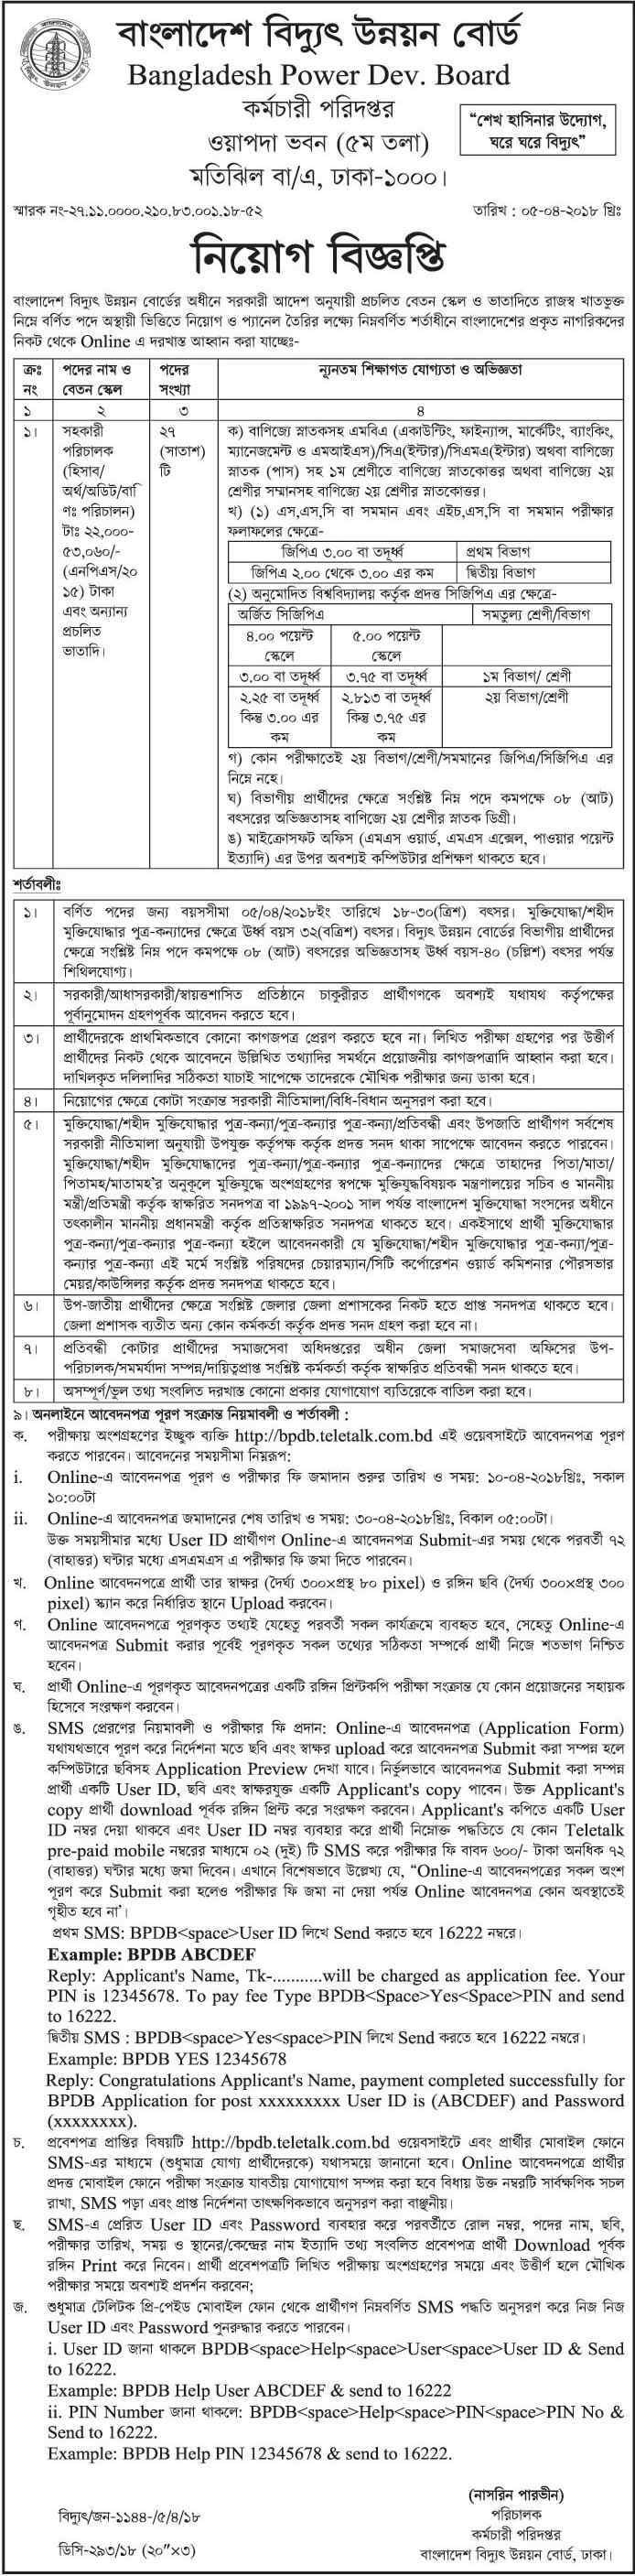 Bangladesh Power Development Board Job Circular 2018